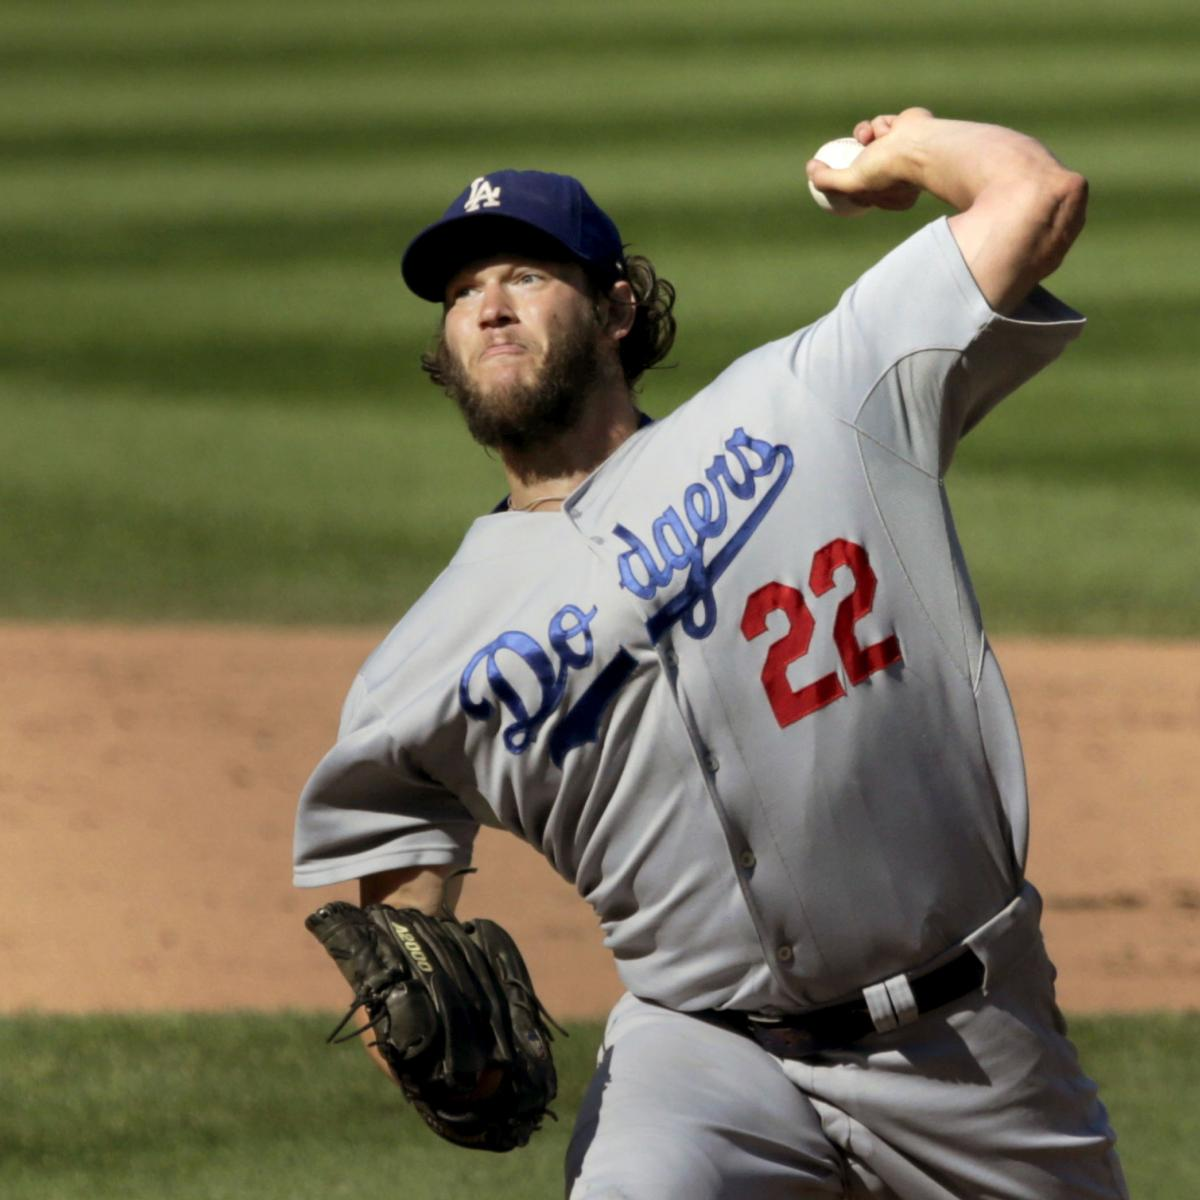 Clayton Kershaw Earns 20th Win with 14-5 Victory over Chicago Cubs | Bleacher Report